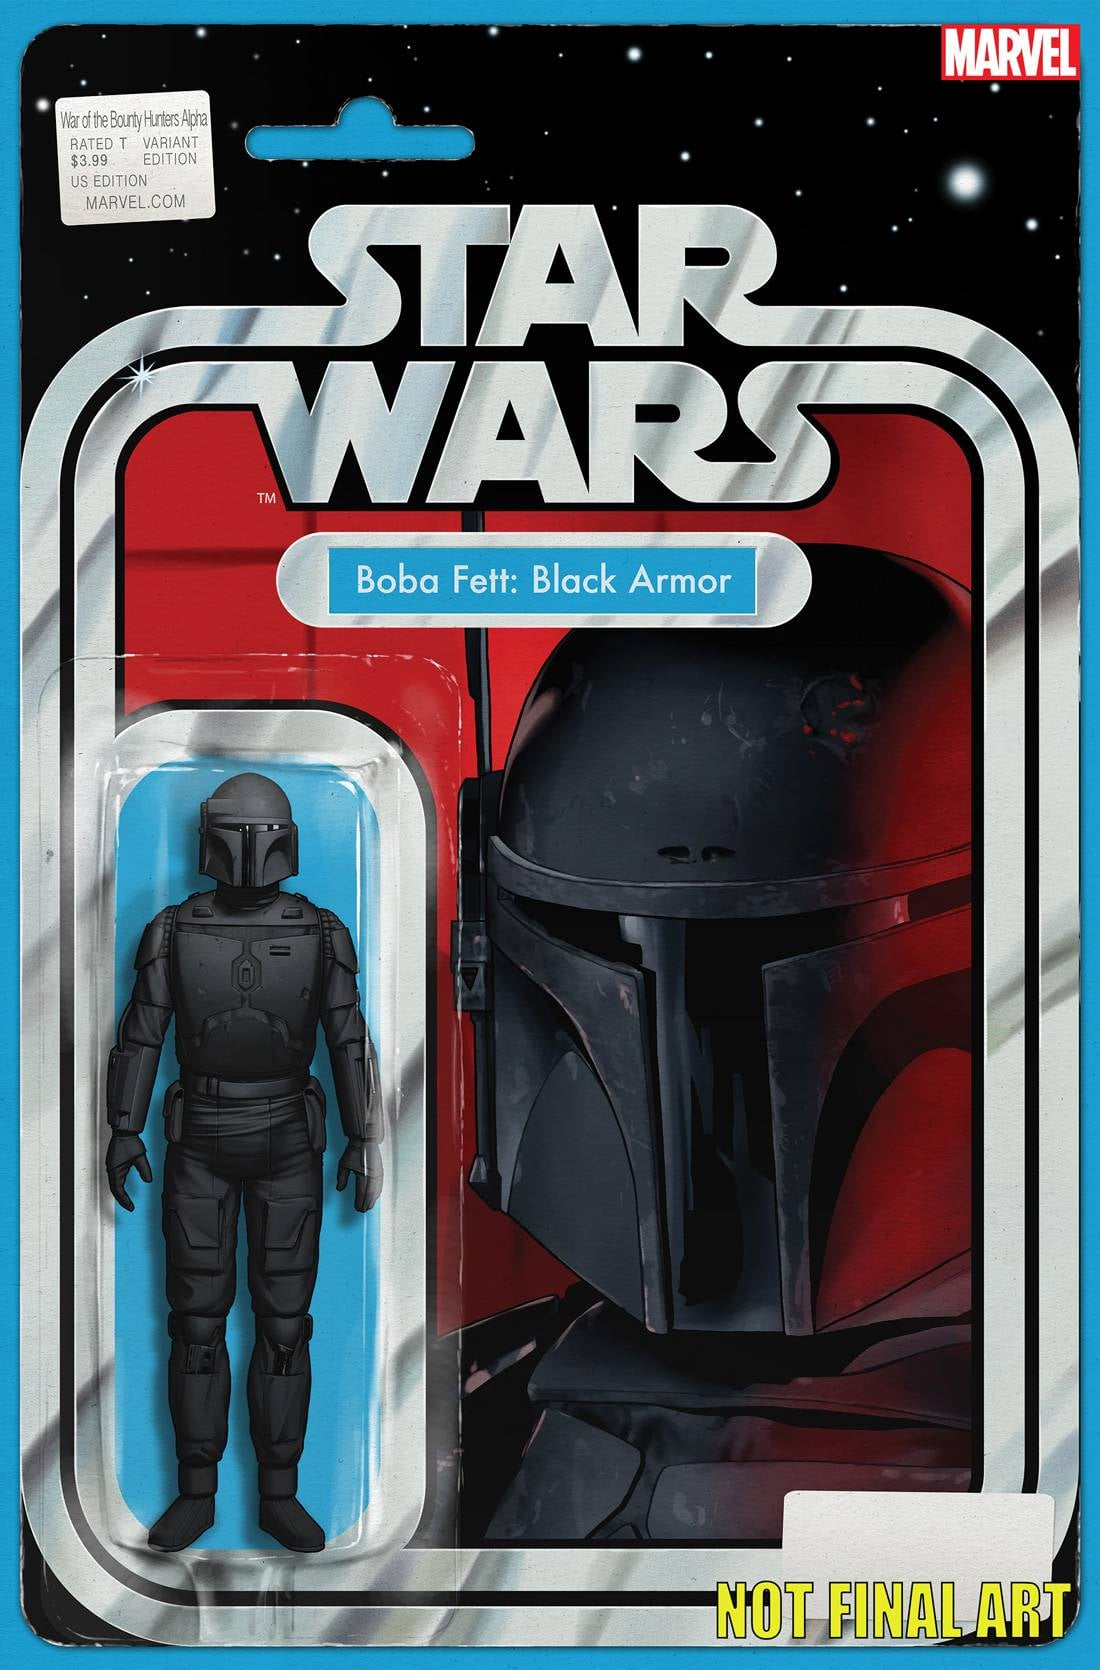 Star Wars: War of the Bounty Hunters Alpha - Action Figure Variant